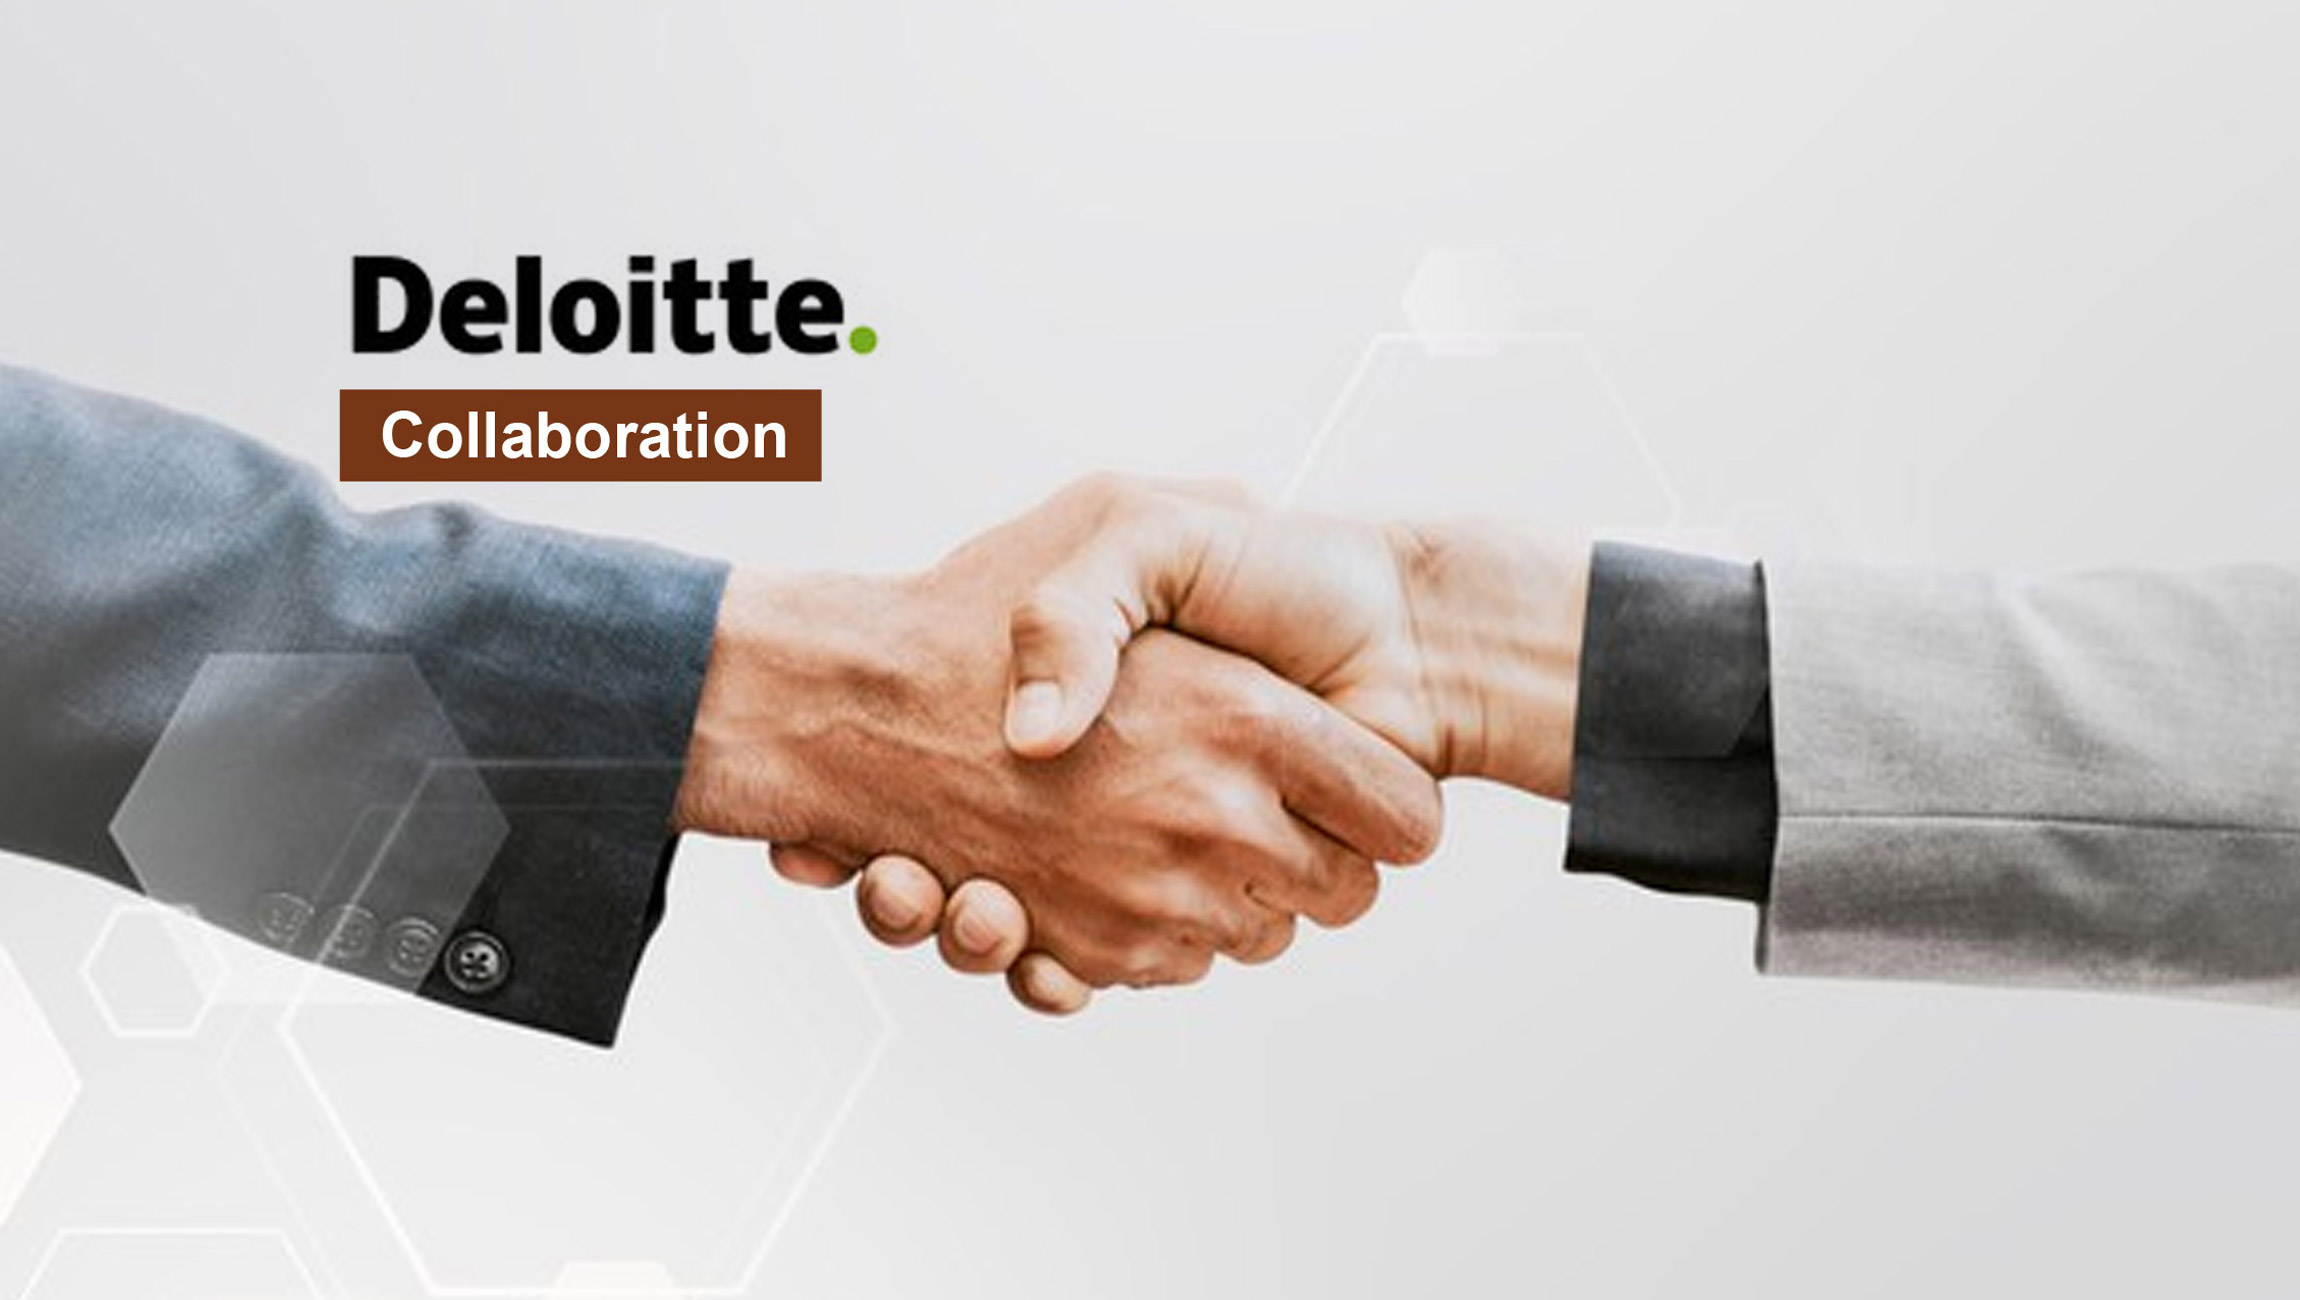 Deloitte and Techstars Collaborate to Connect the Innovation Ecosystem